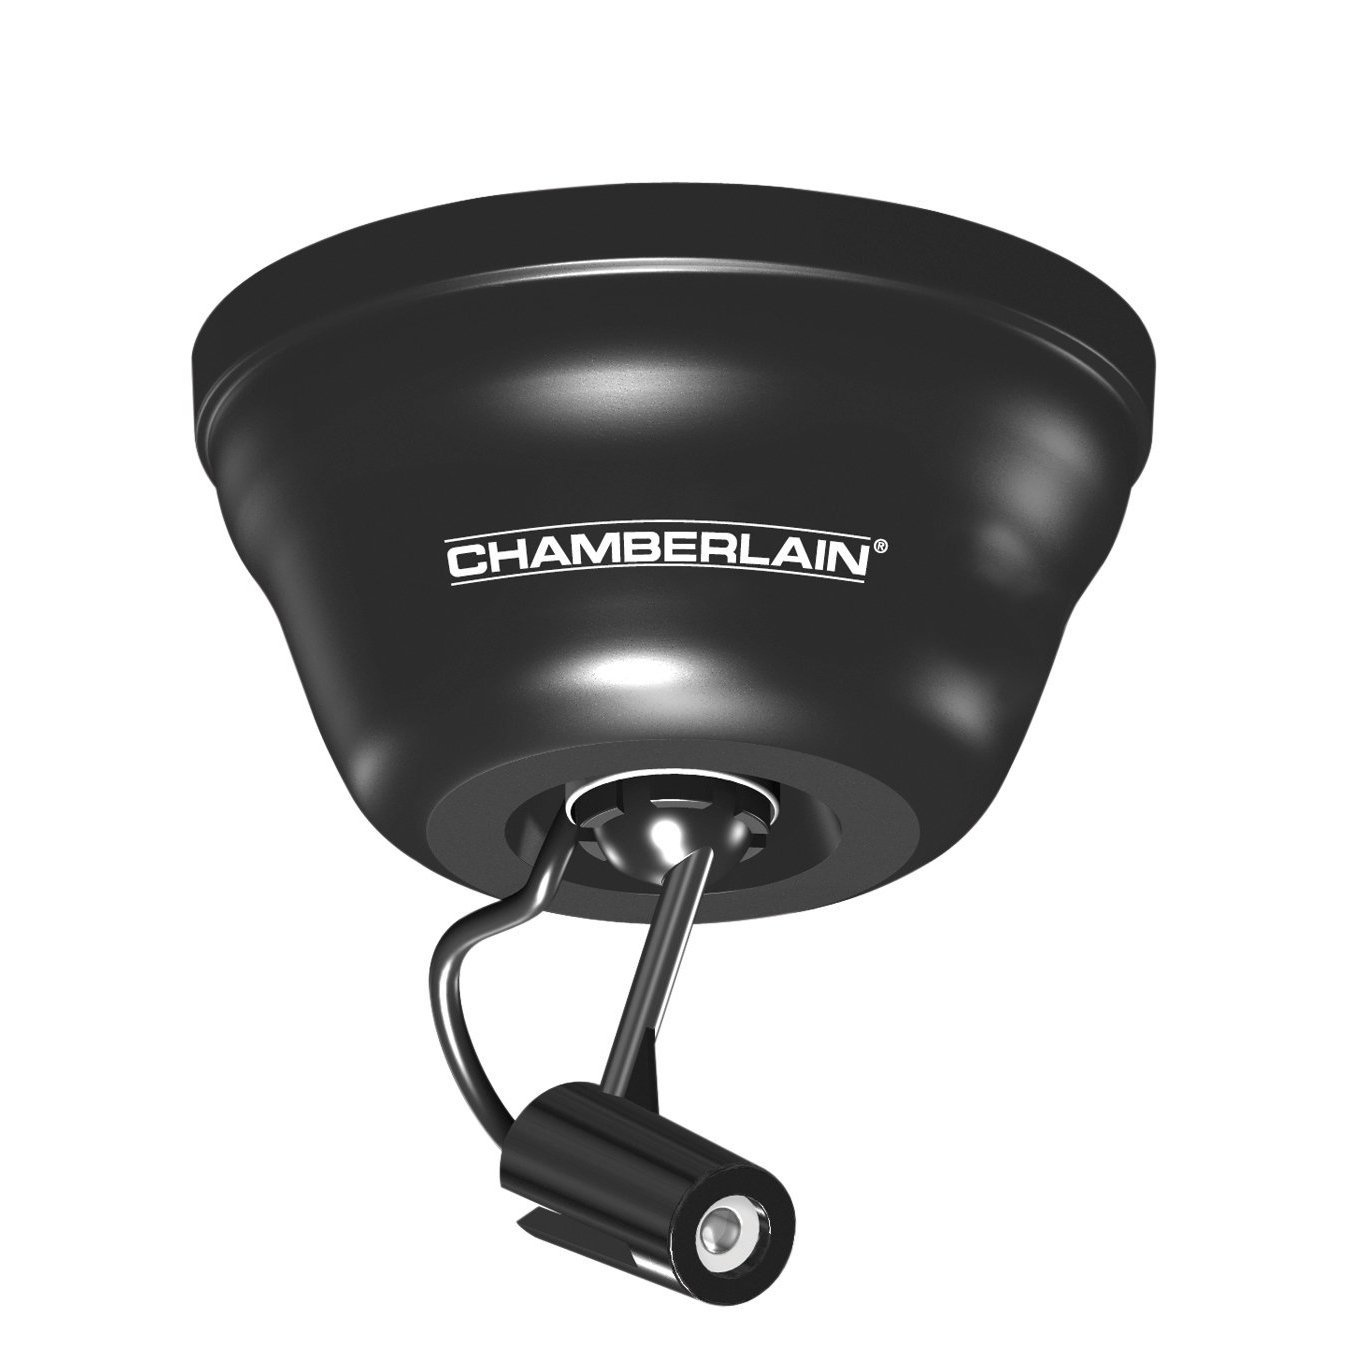 Chamberlain Universal Garage Parking Aid/Assistant CLULP1, Laser Identifies Perfect Parking Spot, Works with Chamberlain, LiftMaster, Craftsman, Genie and All Other Brands of Garage Door Openers by Chamberlain